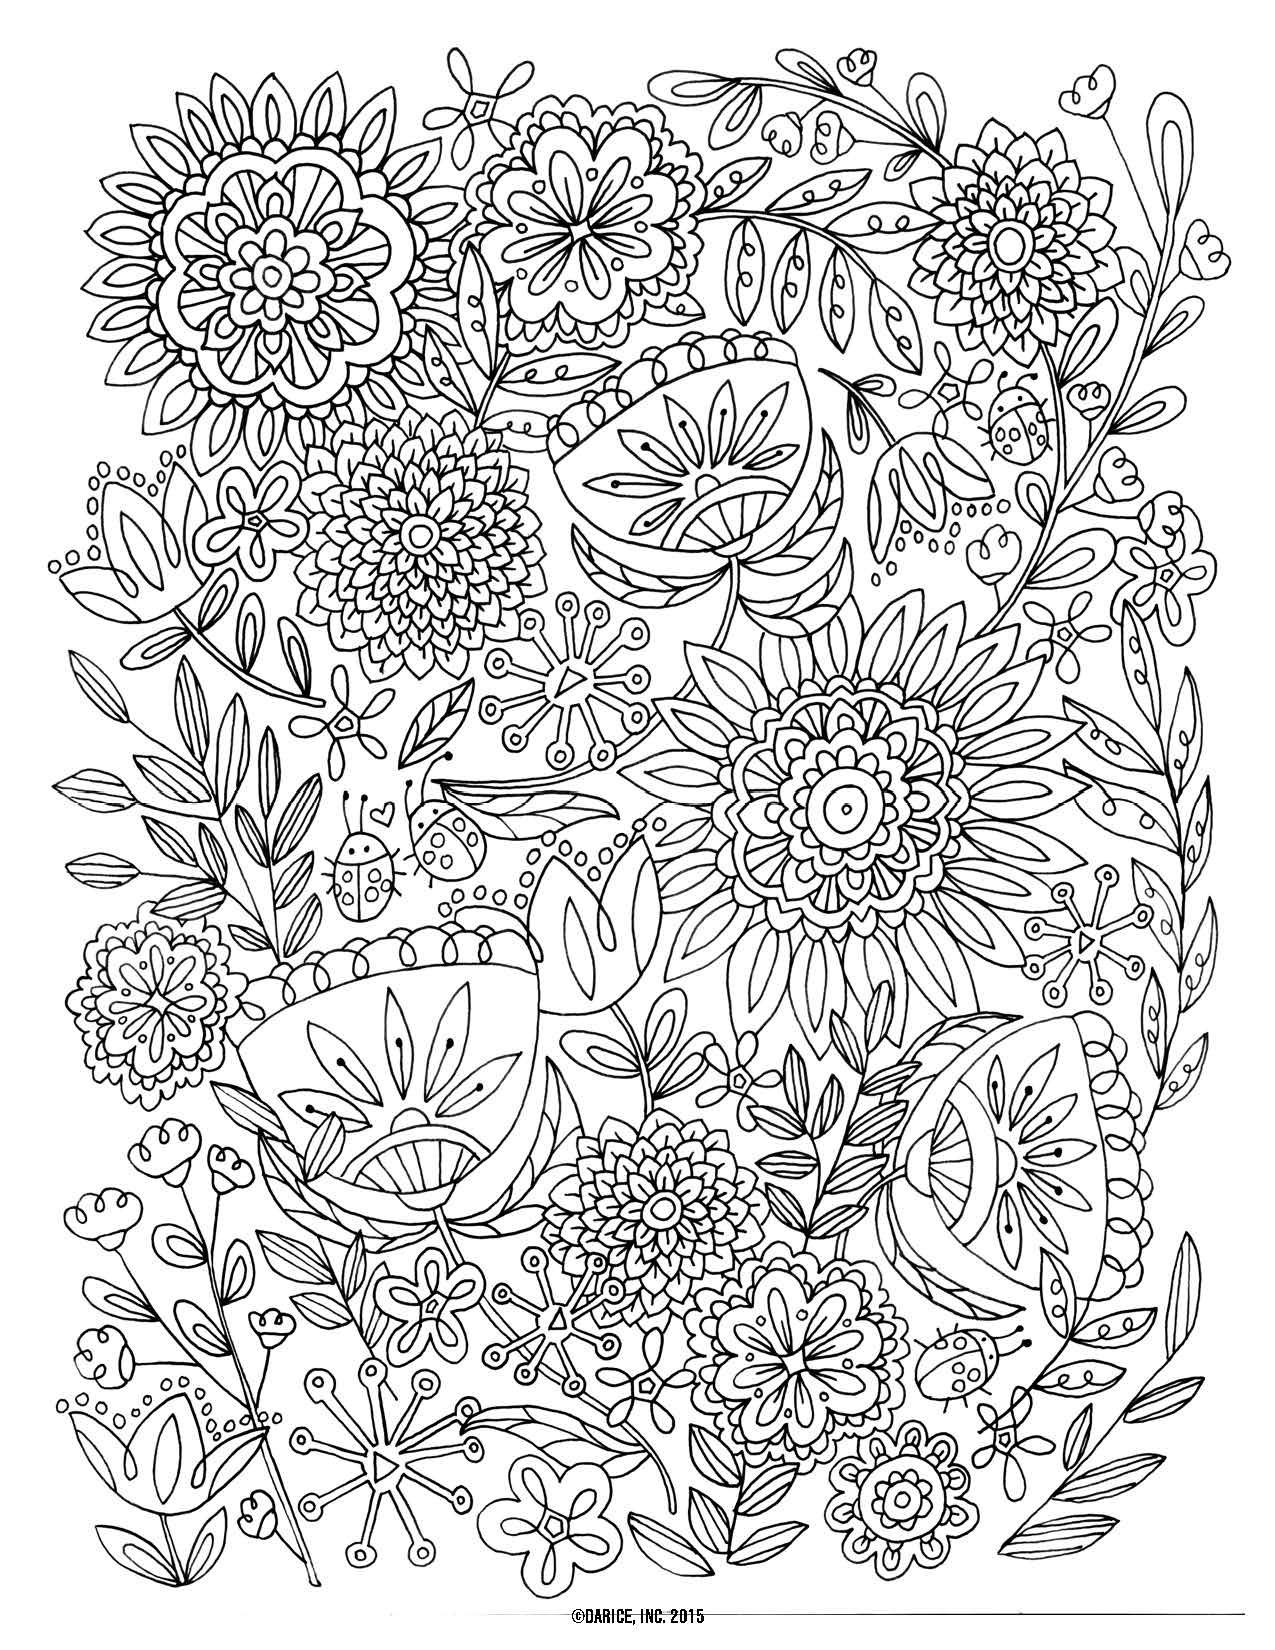 free printable mandalas coloring pages Download-I have a SUPER fun Activity to do with these free coloring pages 2-t